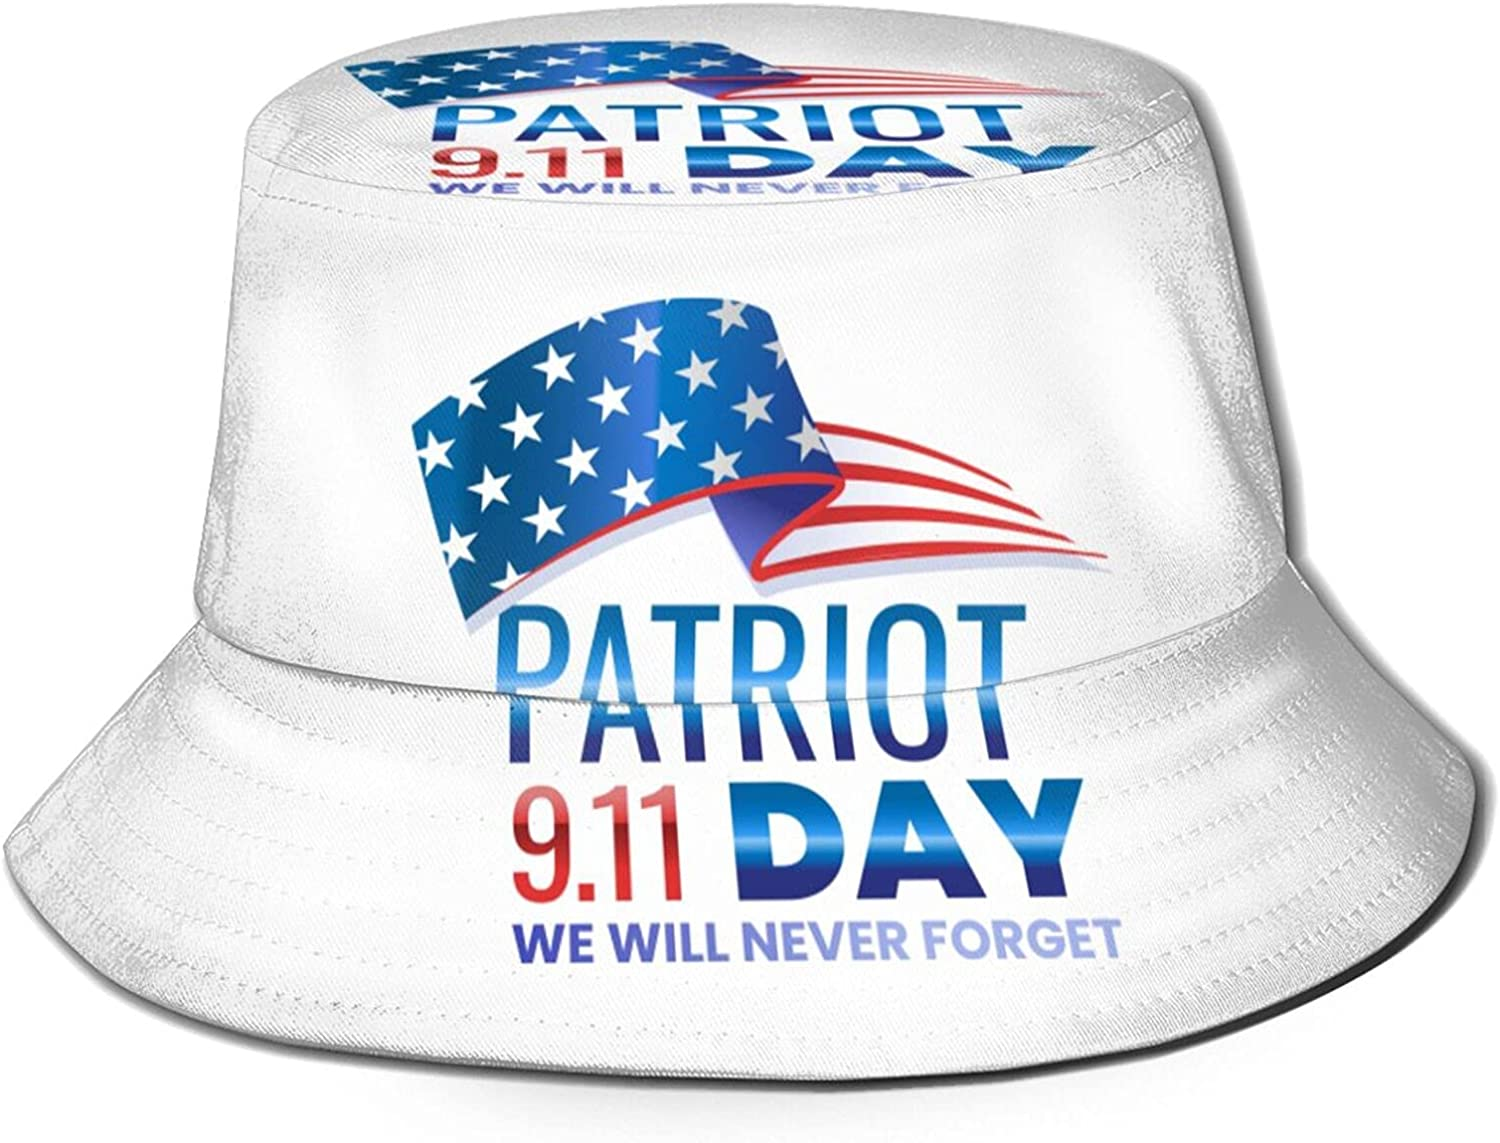 We Will Never Forget Brand Cheap Sale Venue 9 11 Buck List price Attacks Day Flag American Patriot